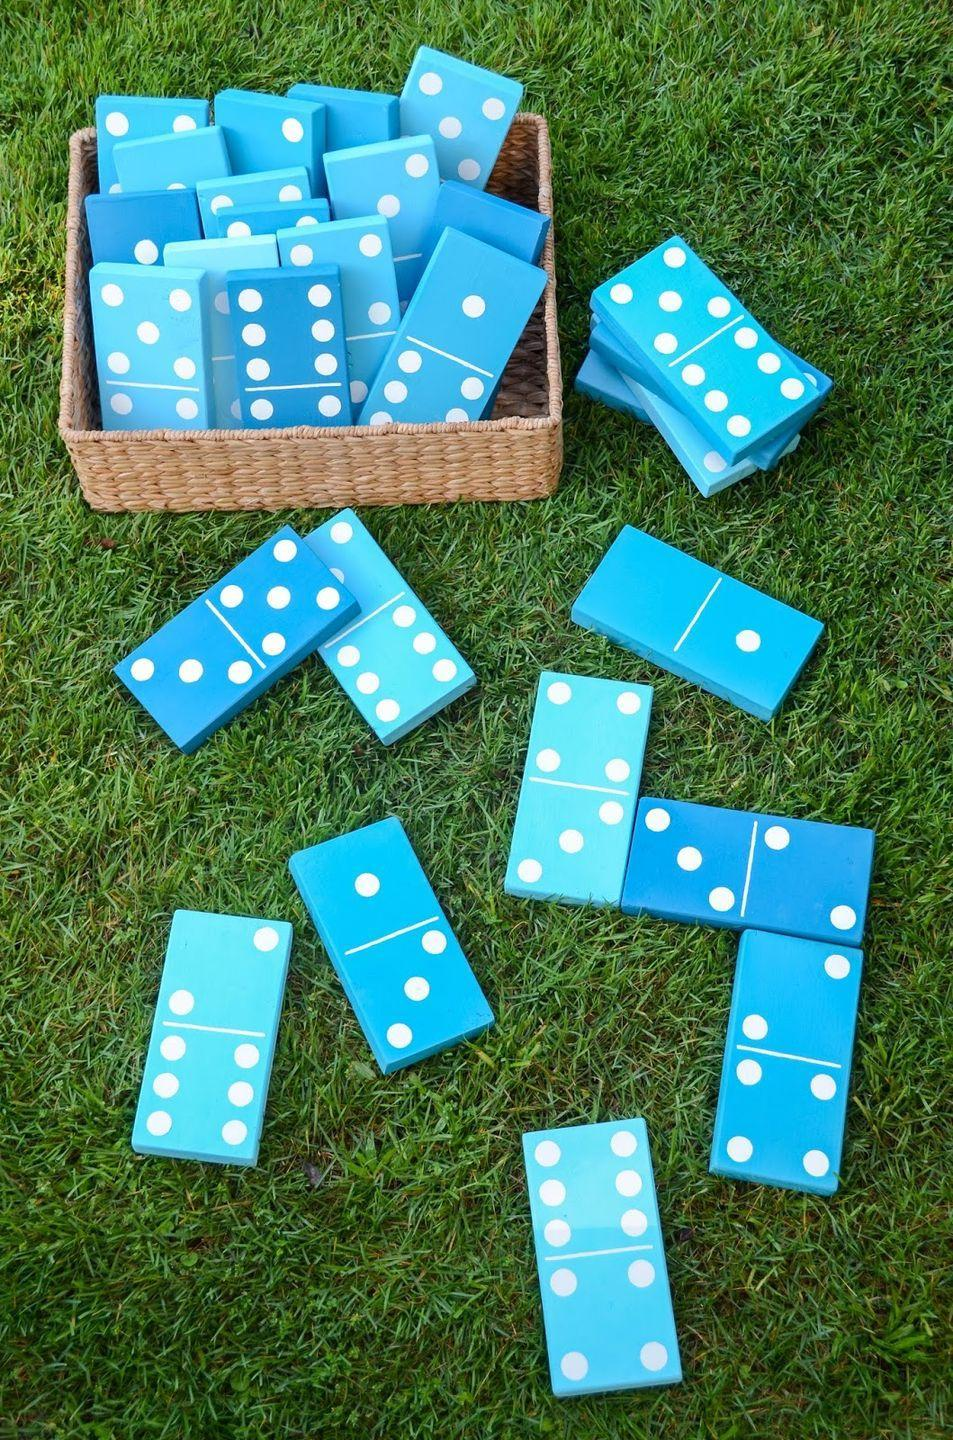 """<p>Once complete, these giant lawn dominoes are sure to be a family favorite for outdoor game nights and barbecues. Opt for a simple palette in bright hues like the turquoise one shown. </p><p><strong>Get the tutorial at <a href=""""https://www.ironandtwine.com/blog/2014/06/diy-lawn-dominoes.html"""" rel=""""nofollow noopener"""" target=""""_blank"""" data-ylk=""""slk:iron & twine"""" class=""""link rapid-noclick-resp"""">iron & twine</a>. </strong></p><p><a class=""""link rapid-noclick-resp"""" href=""""https://www.amazon.com/3M-9005NA-Aluminum-Sandpaper-Assorted/dp/B00004Z48U/?tag=syn-yahoo-20&ascsubtag=%5Bartid%7C2164.g.36687460%5Bsrc%7Cyahoo-us"""" rel=""""nofollow noopener"""" target=""""_blank"""" data-ylk=""""slk:SHOP SANDPAPER"""">SHOP SANDPAPER</a></p>"""